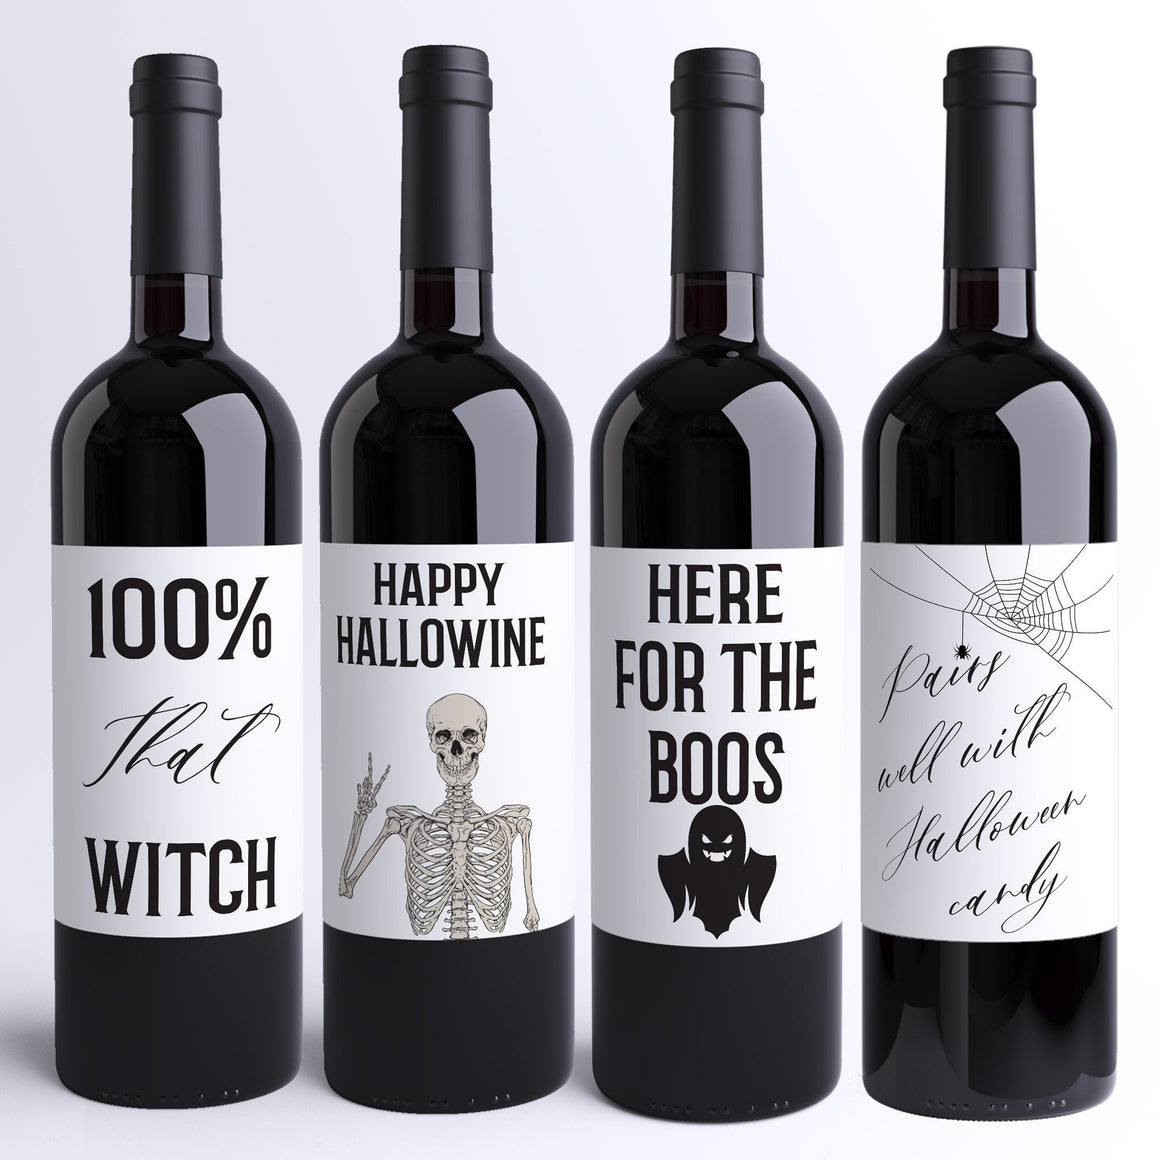 Four Funny Halloween Wine Labels - 4 Stickers Funny Halloween Party Decor Here For Boos That Witch Hallowine Pairs Well With Candy 9280